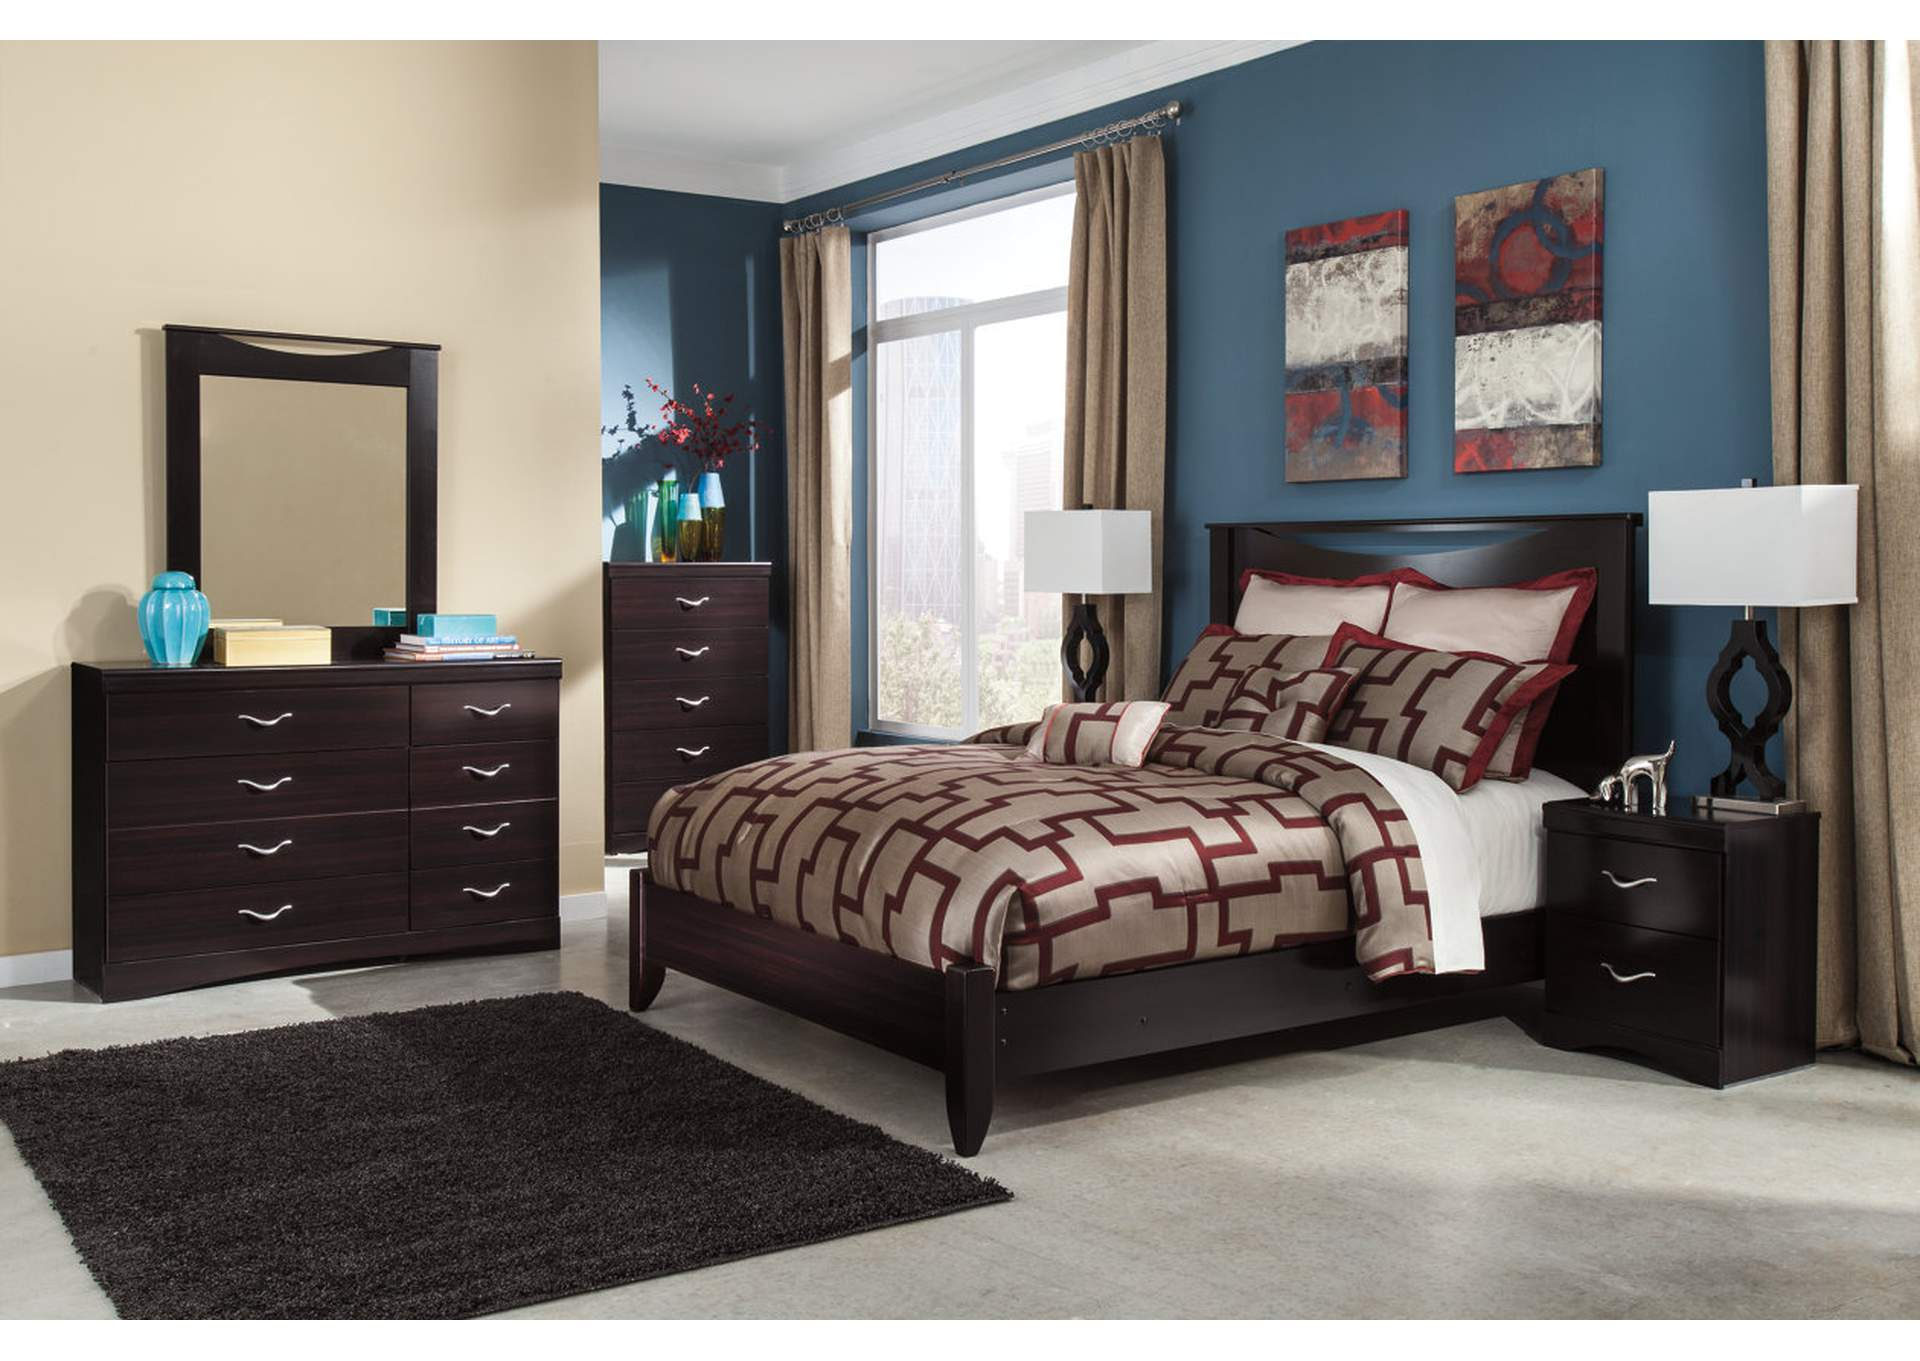 Zanbury King Panel Bed w/Dresser, Mirror & Drawer Chest,Signature Design By Ashley